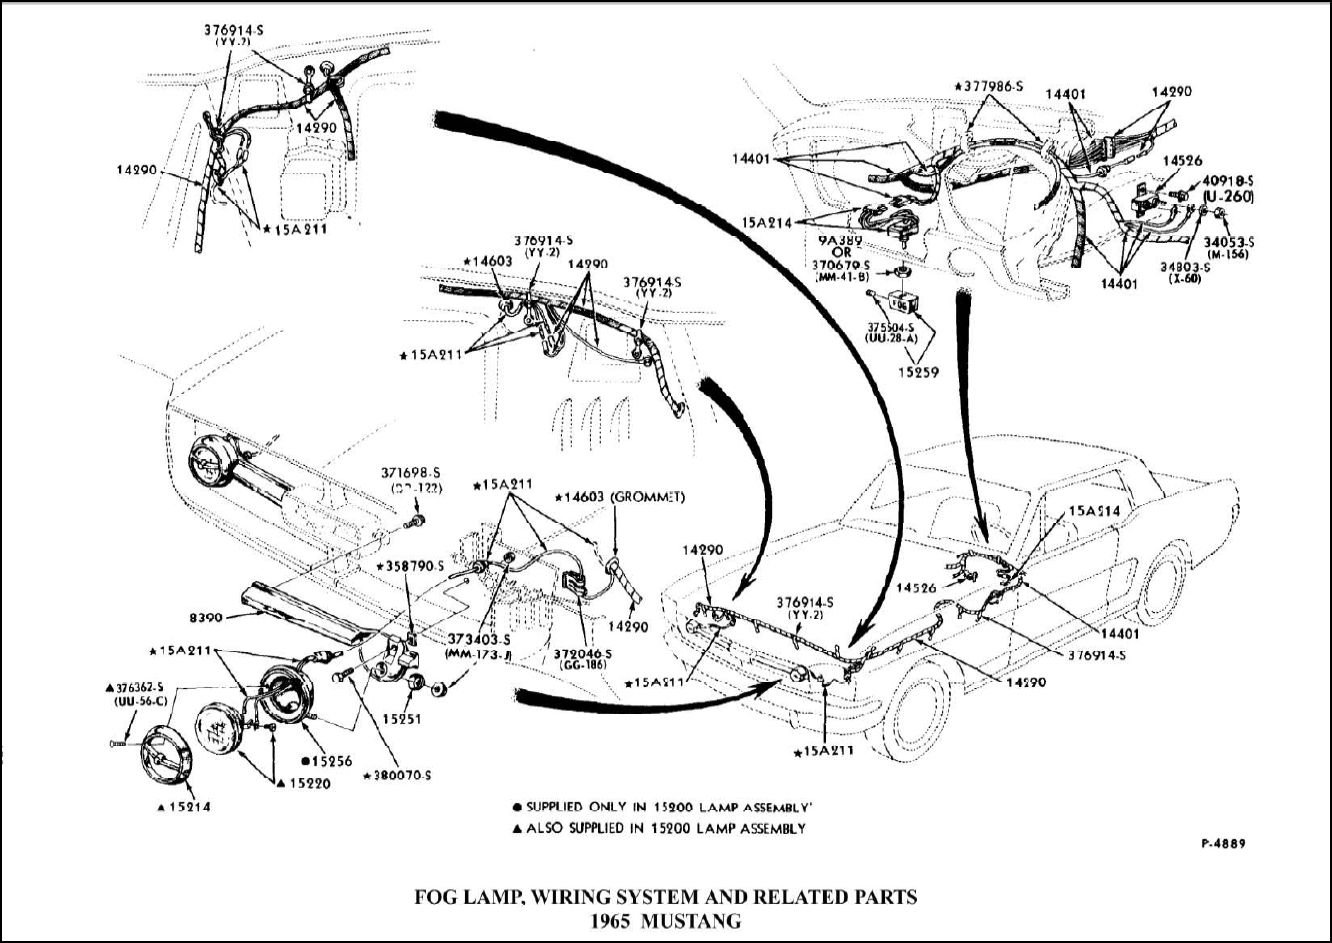 1965 mustang radio wiring connections ford mustang forum wiring 66 Mustang Blower Motor Wiring Diagram